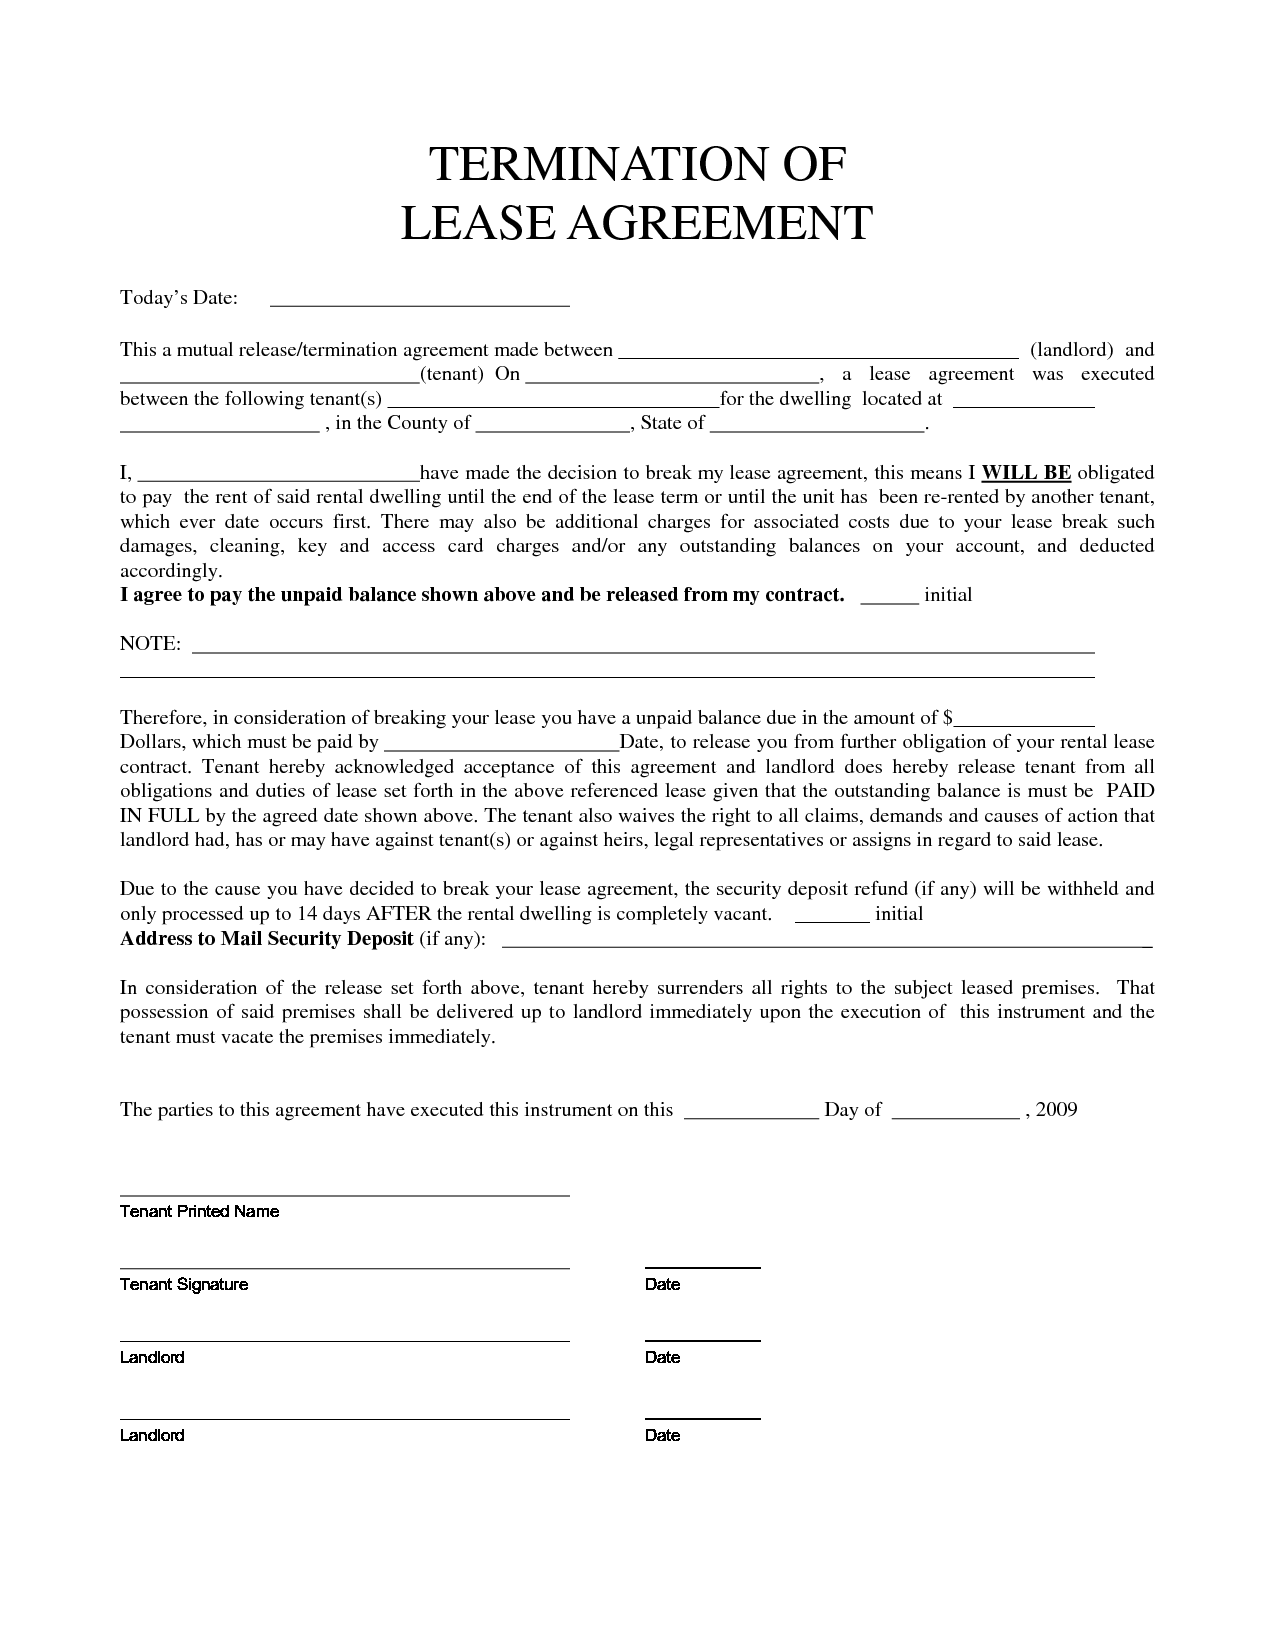 personal property rental agreement forms property rentals direct personal property rental agreement forms property rentals direct termination of lease agreement form